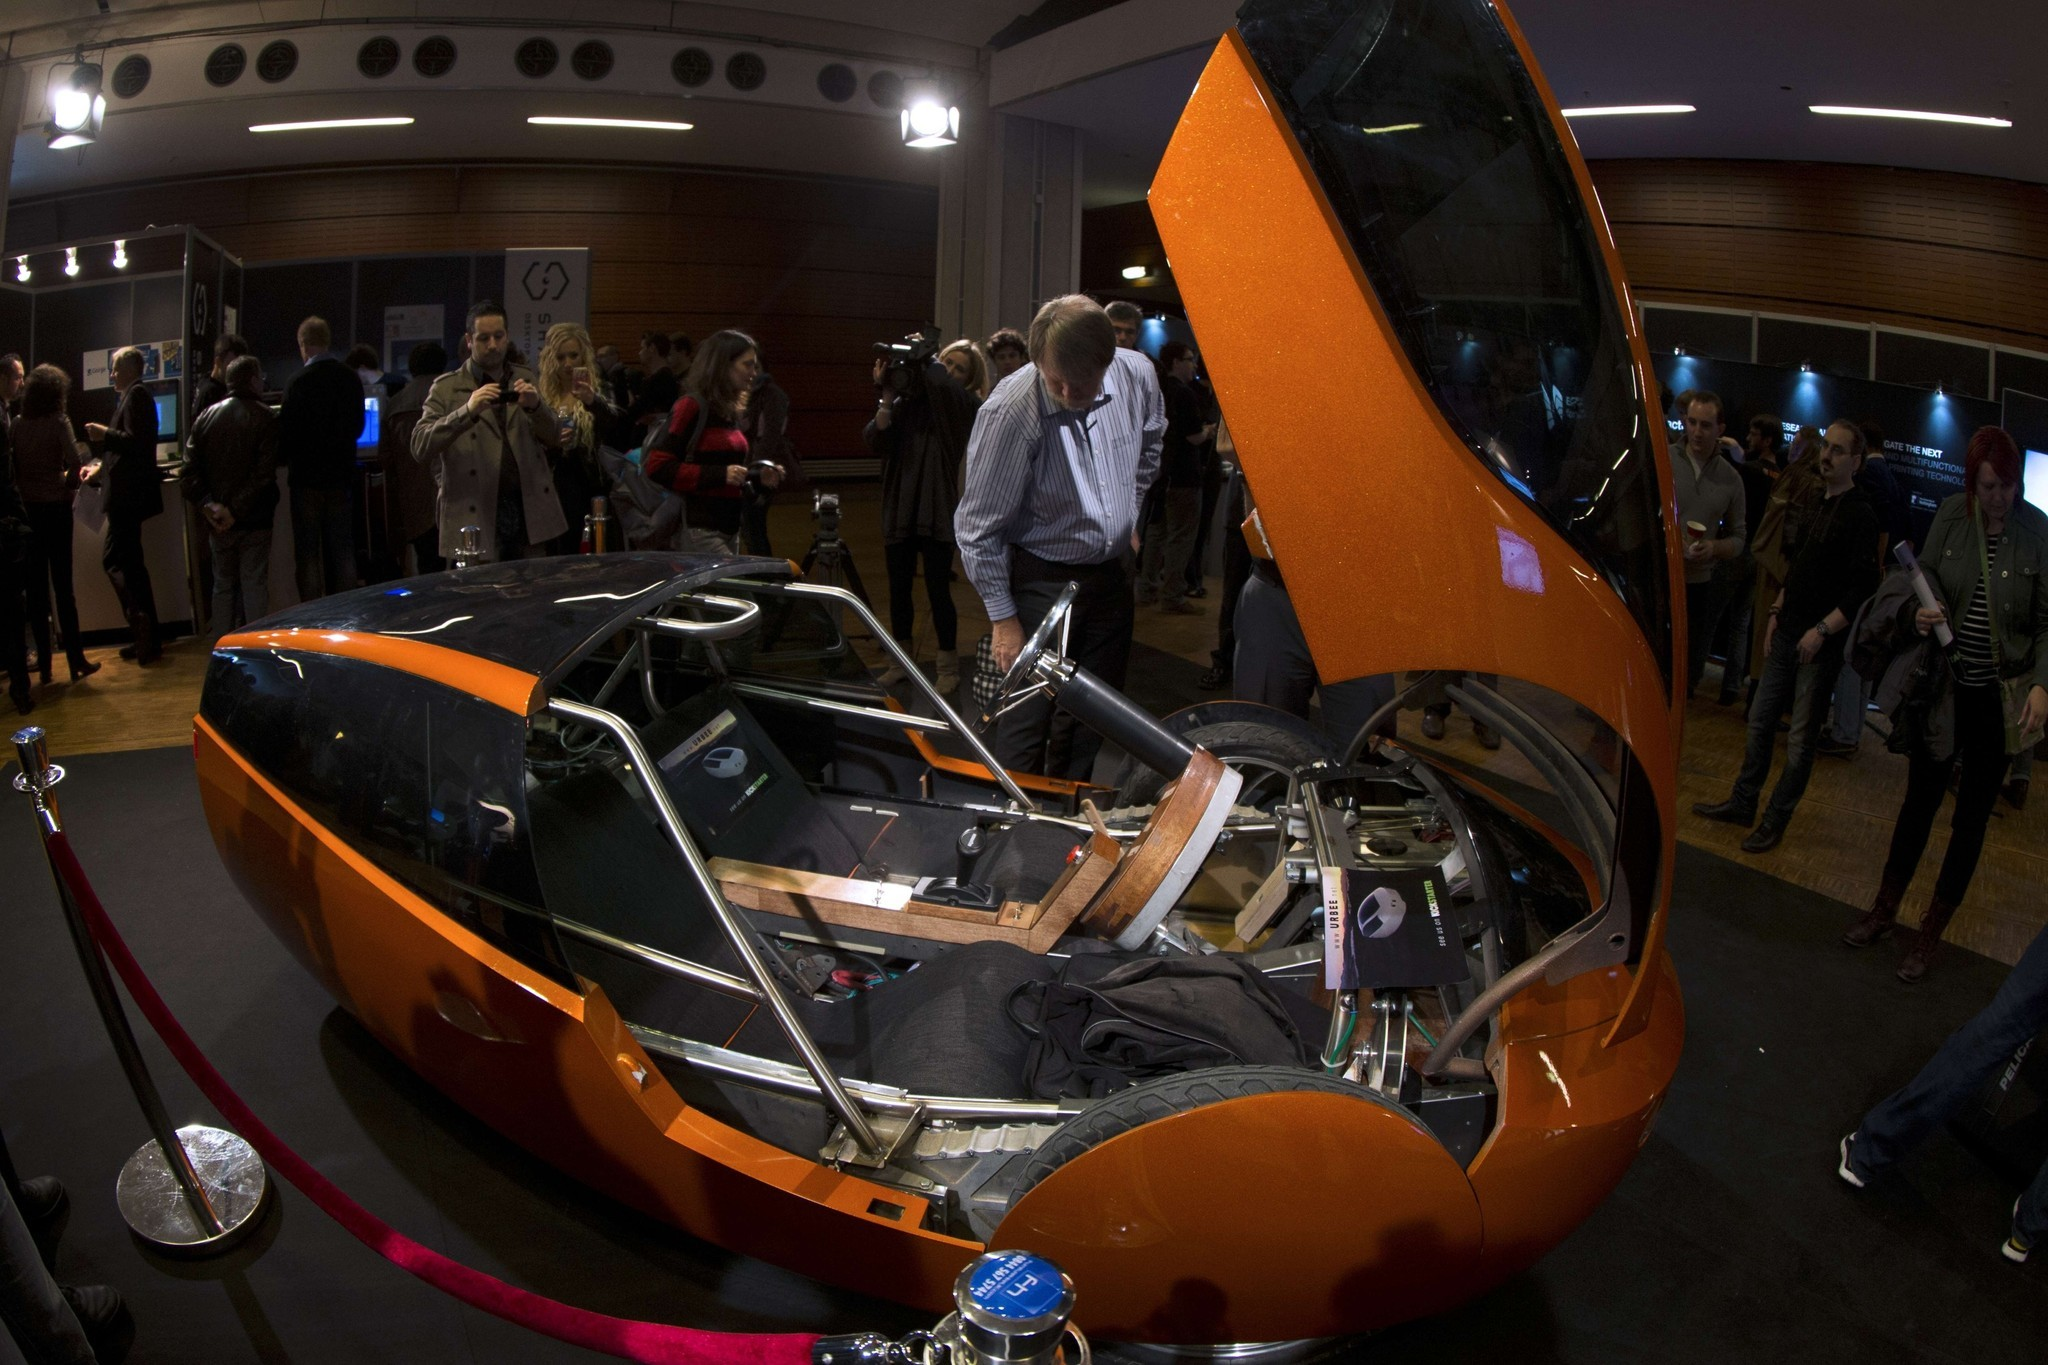 3-D printers bring quirky eco-car to life